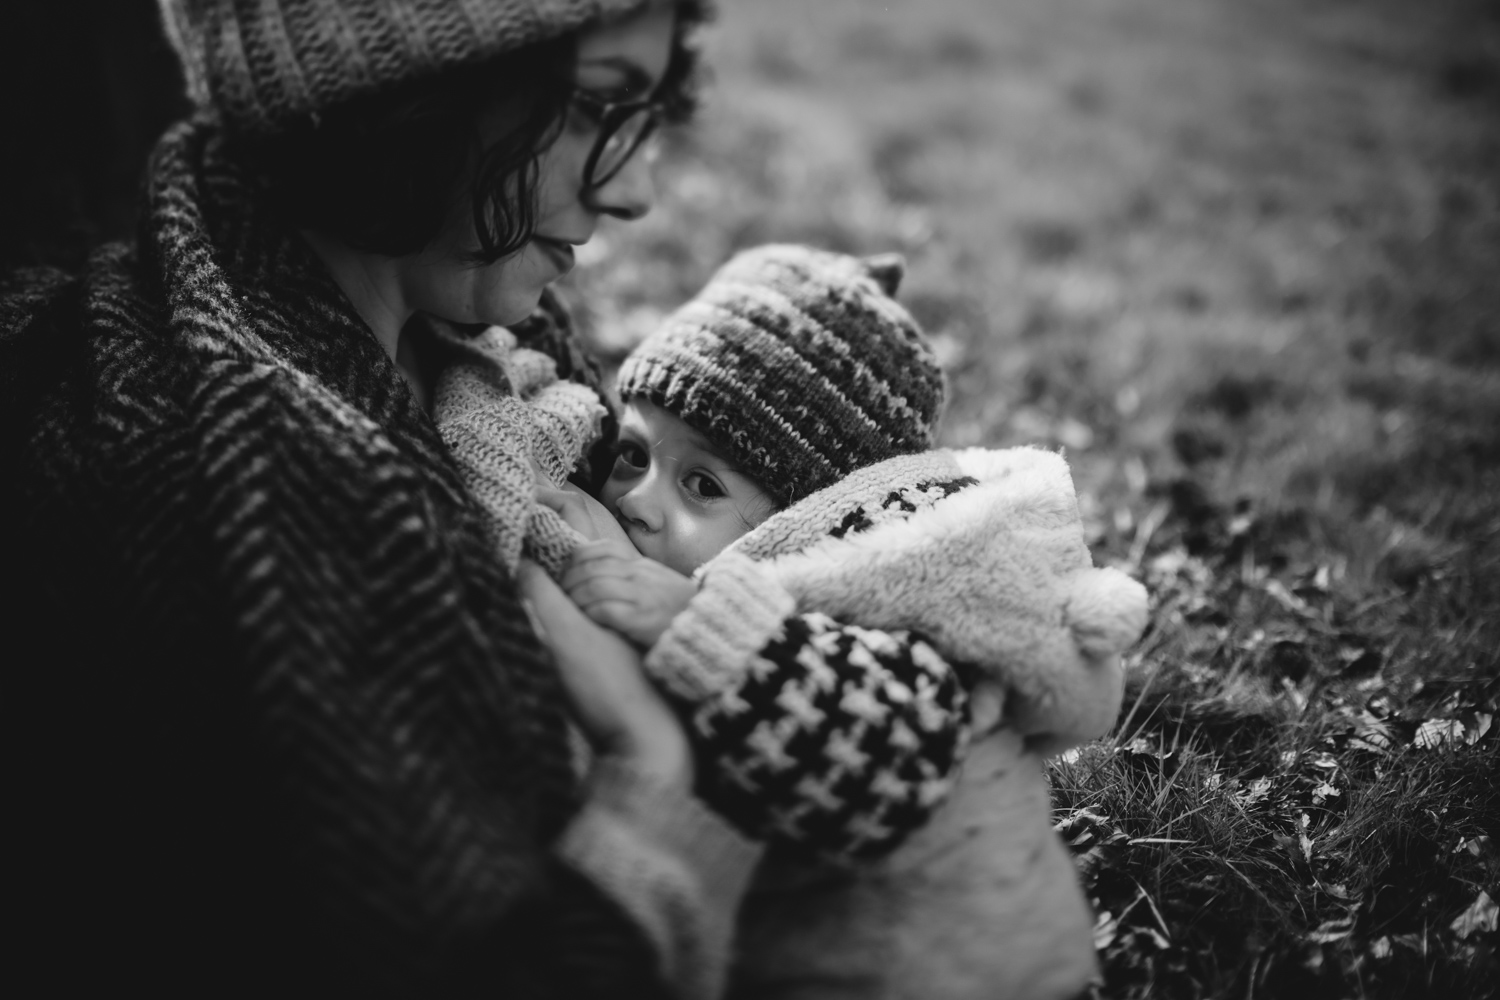 Copy of Black and white breastfeeding photograph freelensed